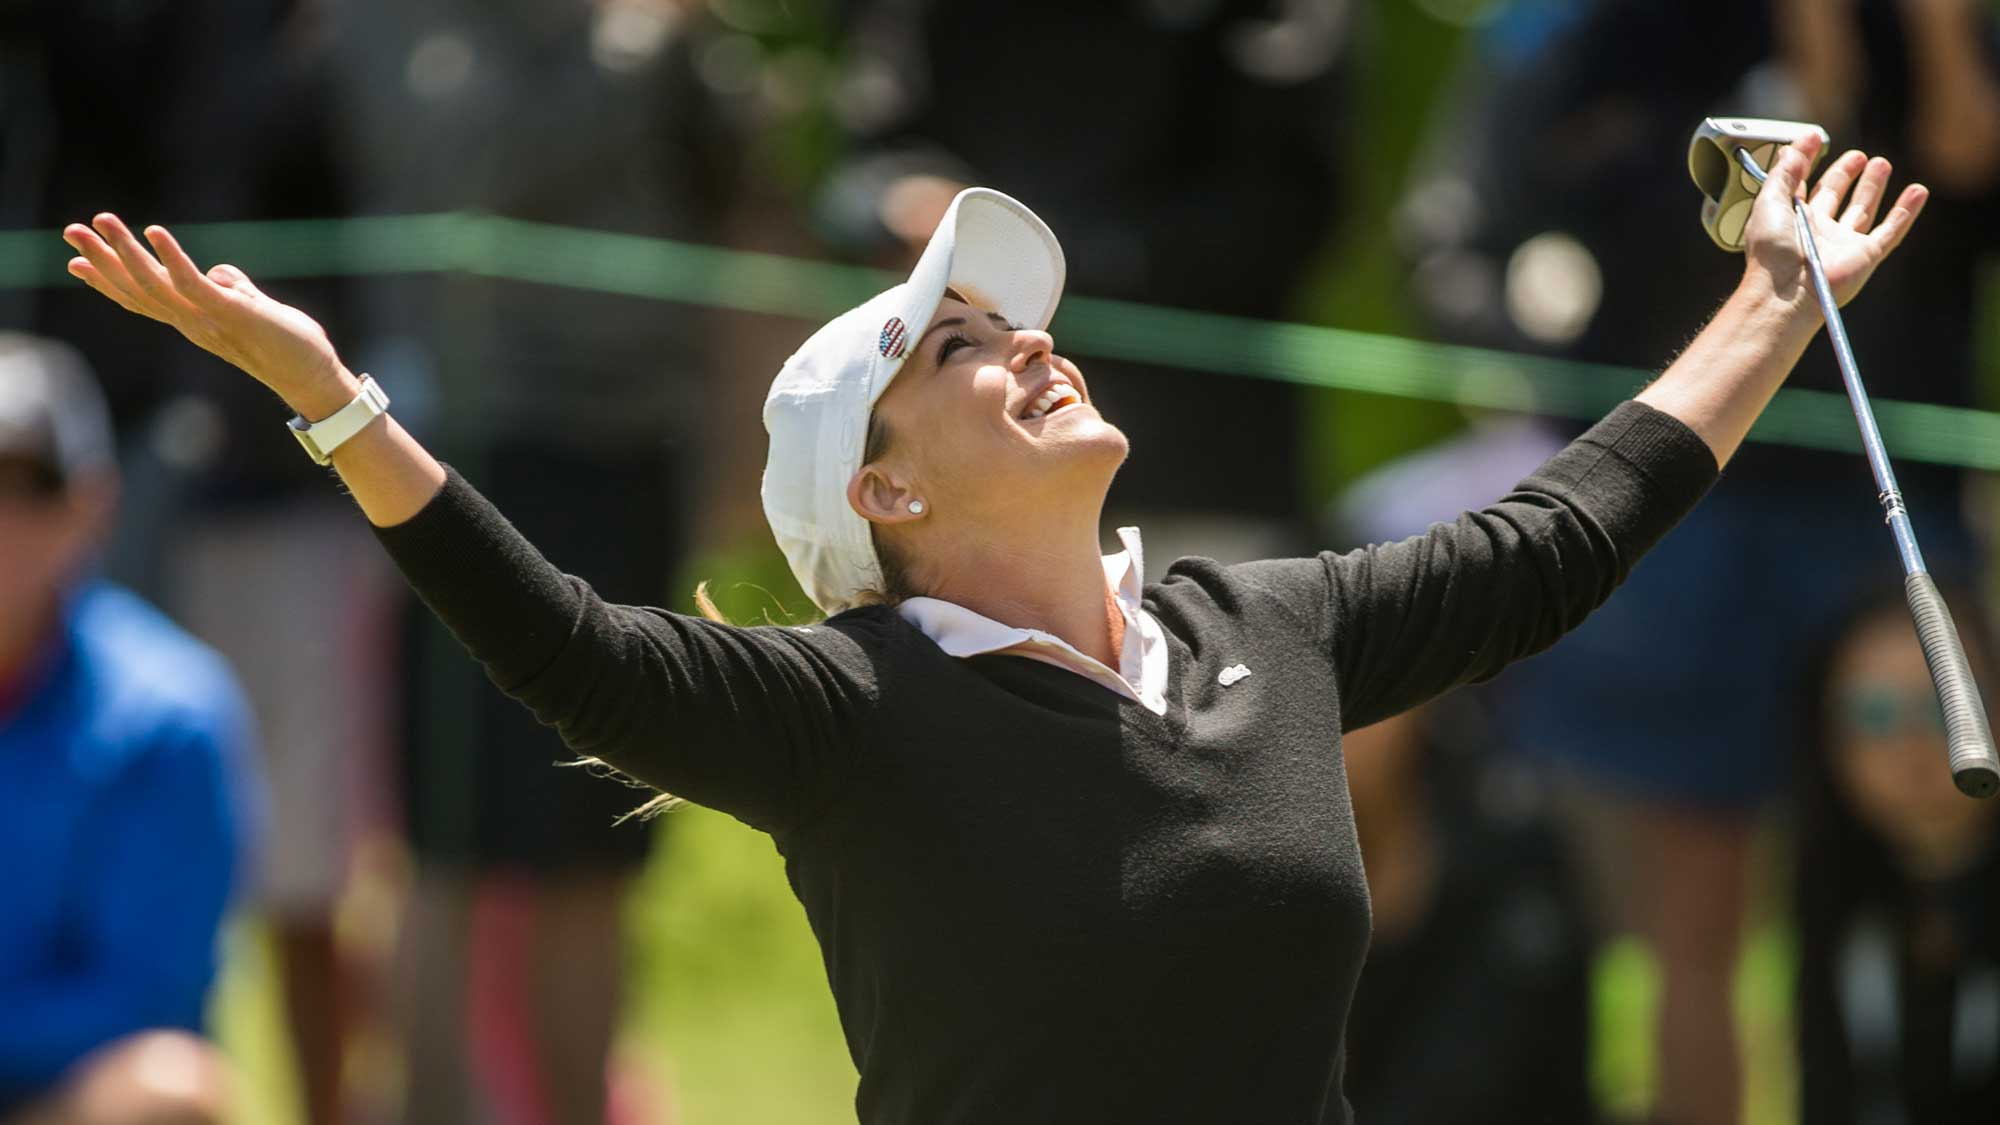 Cristie Kerr of the United States reacts to making a birdie putt at the eighth hole during the final round of the Volunteers of America Texas Shootout